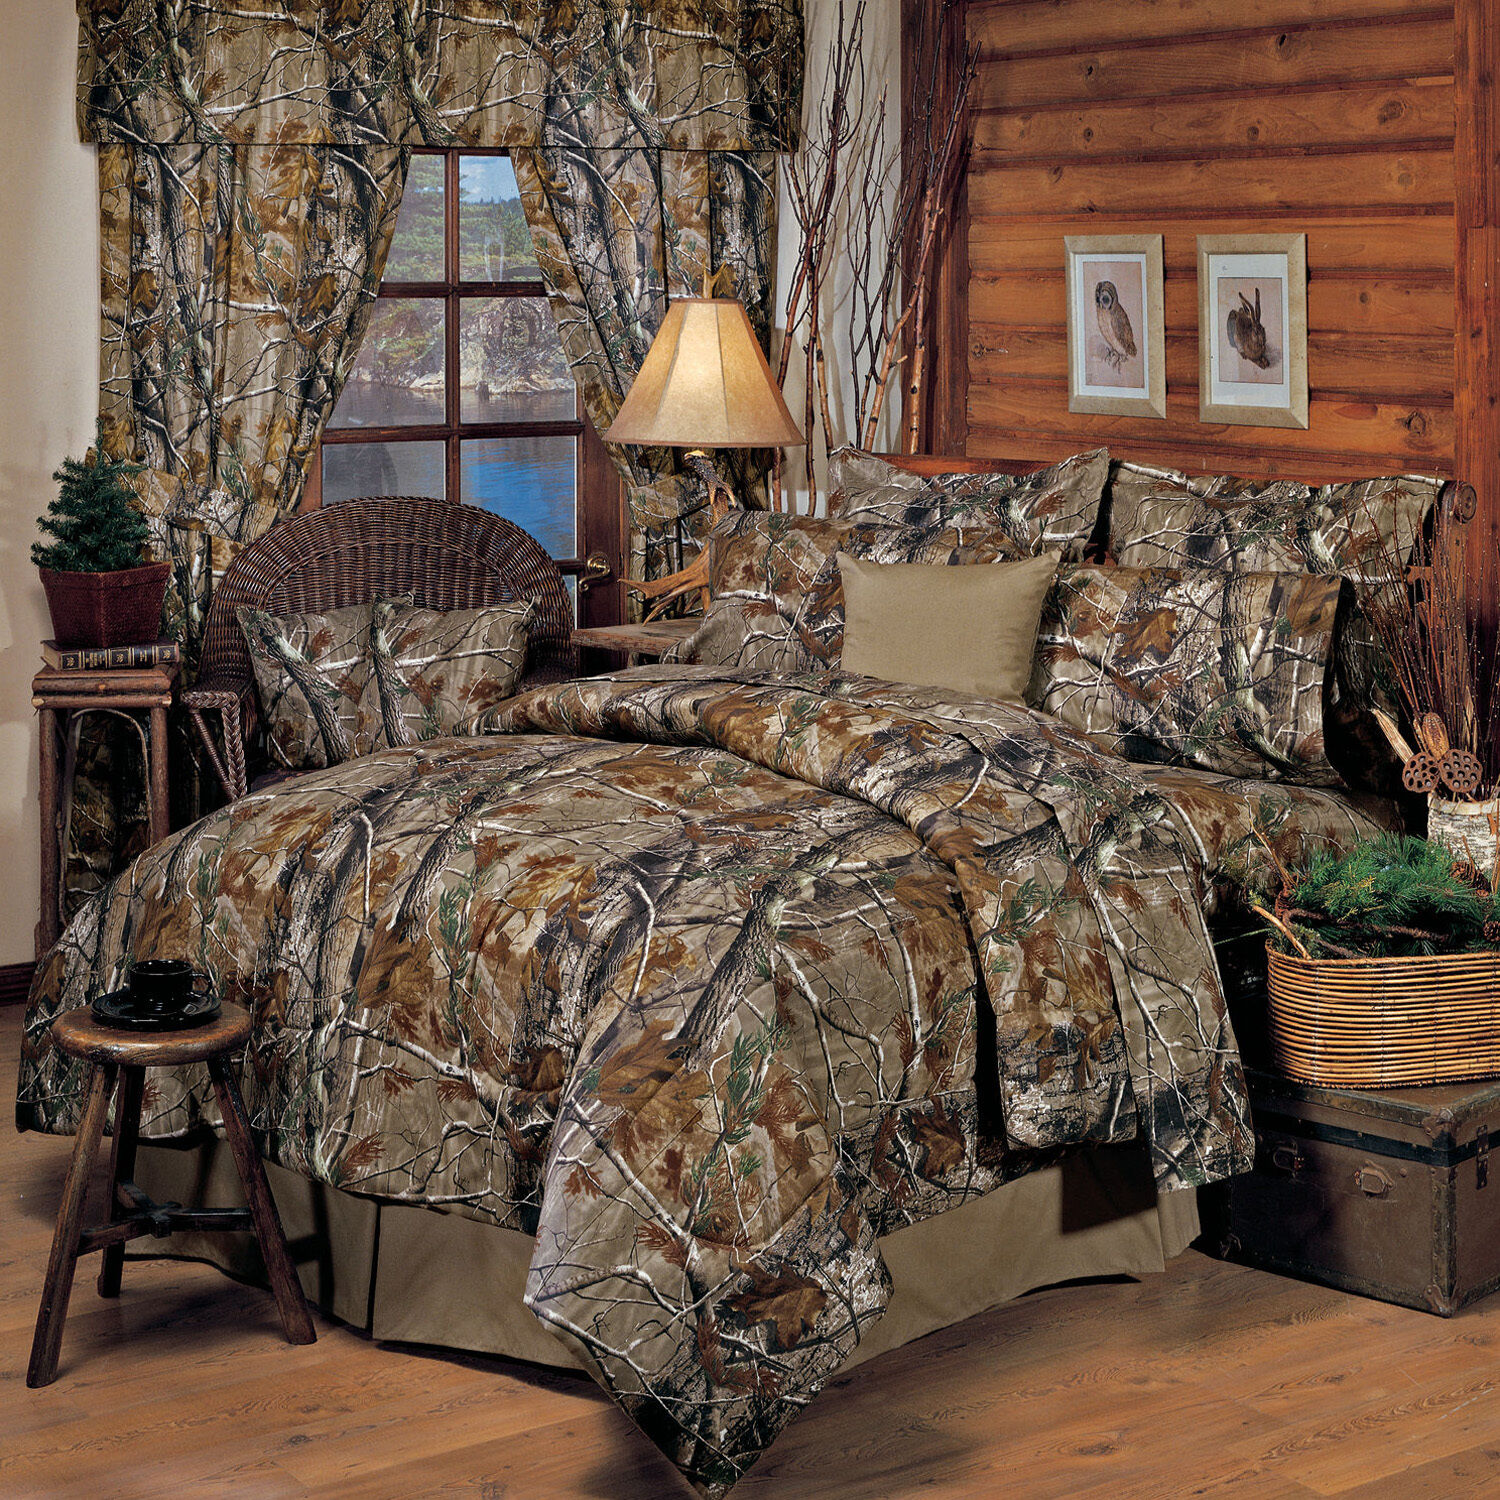 Realtree All Purpose Camo Comforter Set With Sheet and Curtain Option